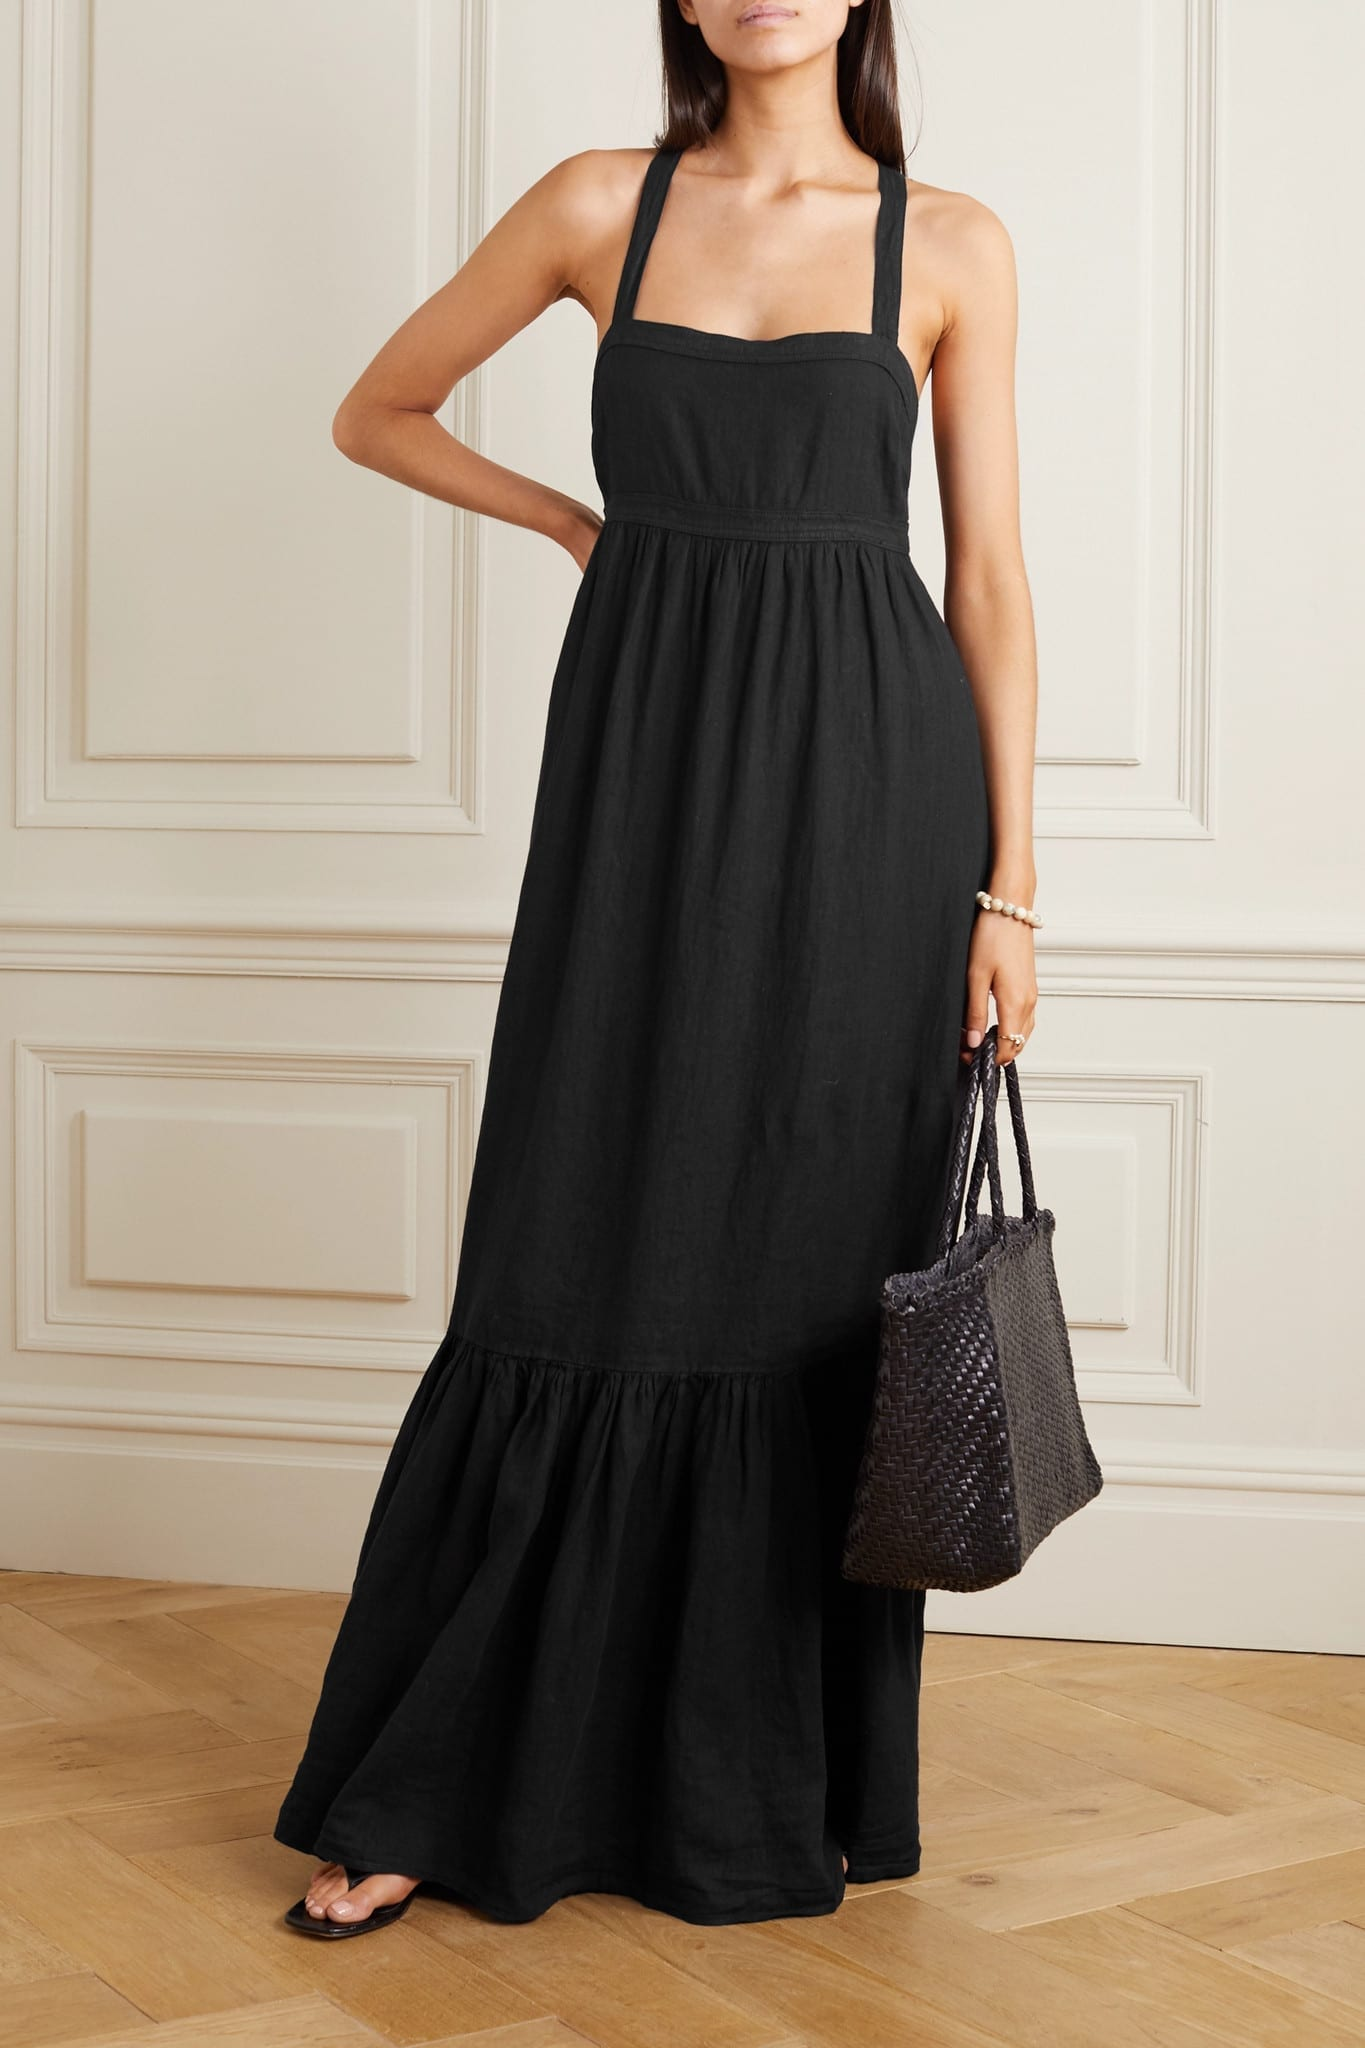 HONORINE Athena Tiered Maxi Dress